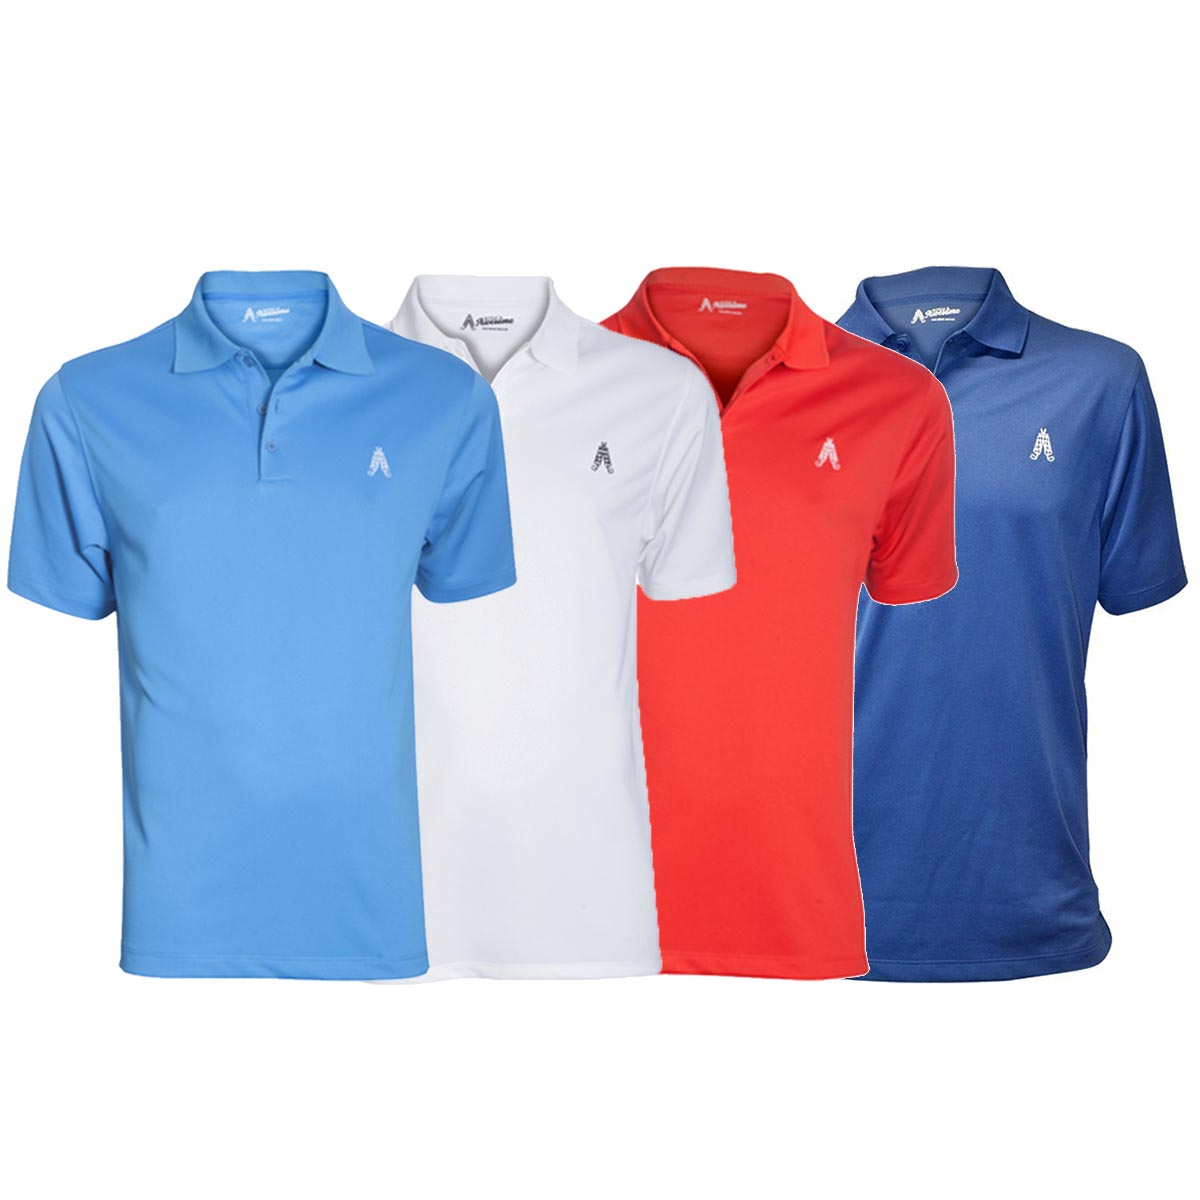 ffcd4d32 Details about SALE Cheap Mens Golf Shirt by Royal and Awesome 4 Colors S -  XXL Golf Polos Top